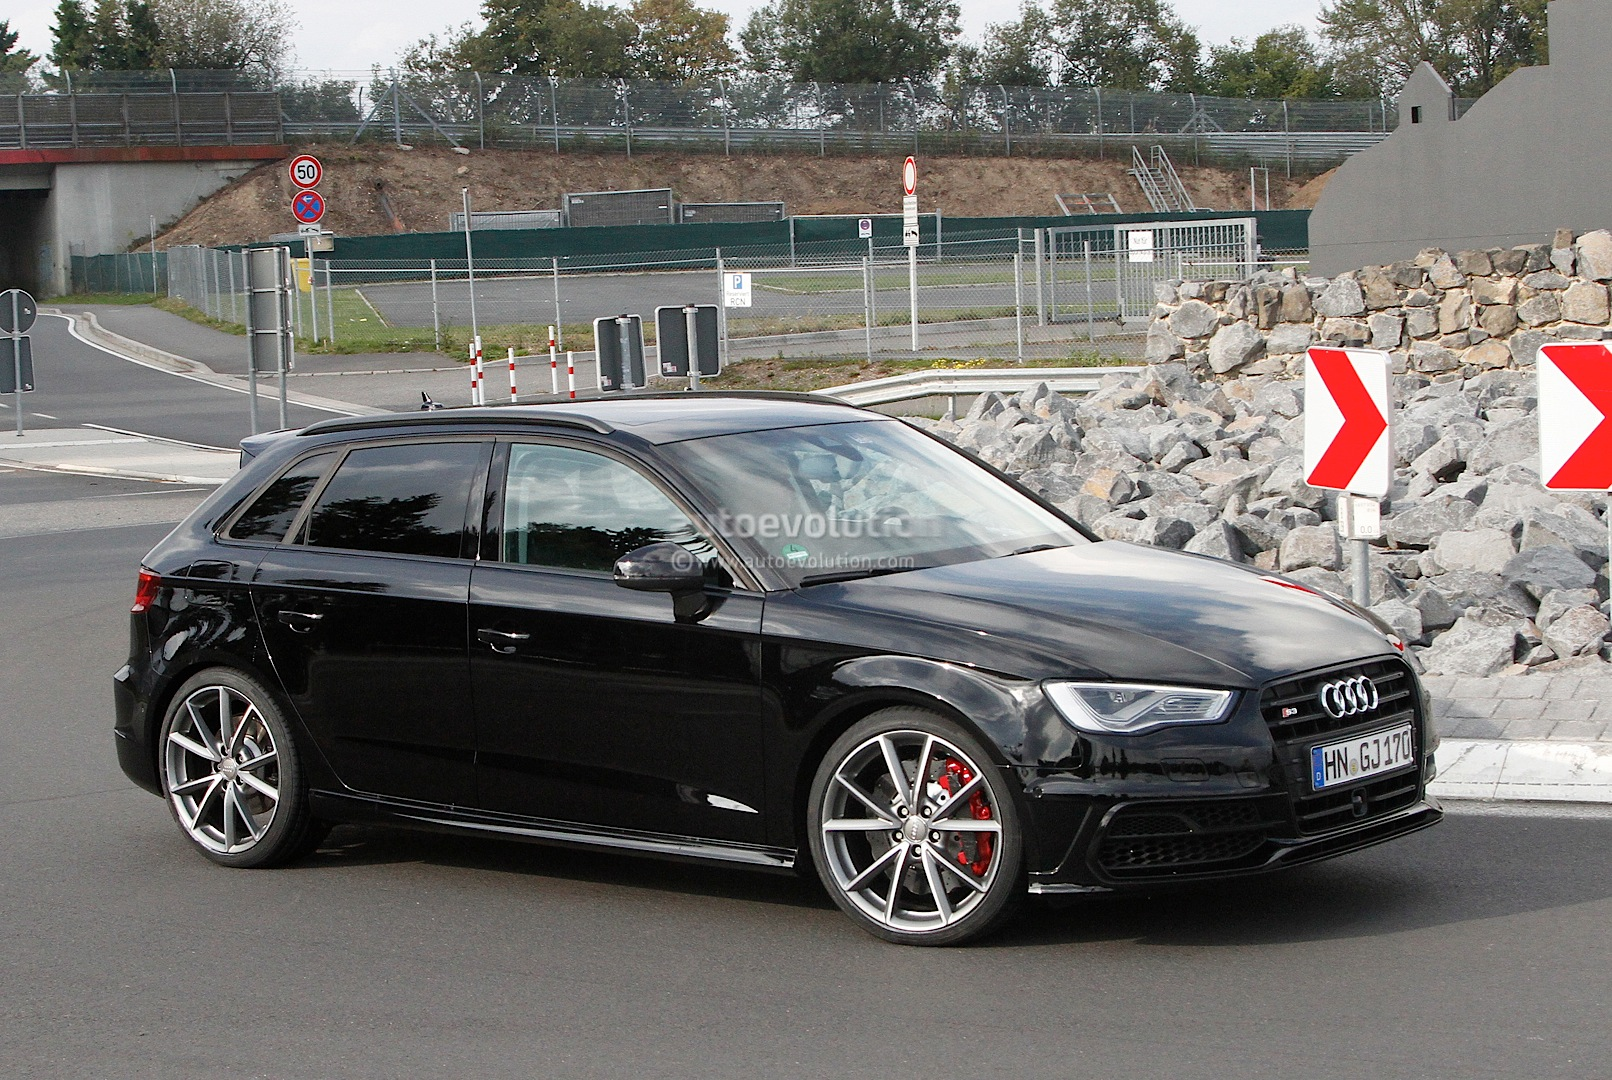 spyshots 2015 audi rs3 test mule autoevolution. Black Bedroom Furniture Sets. Home Design Ideas